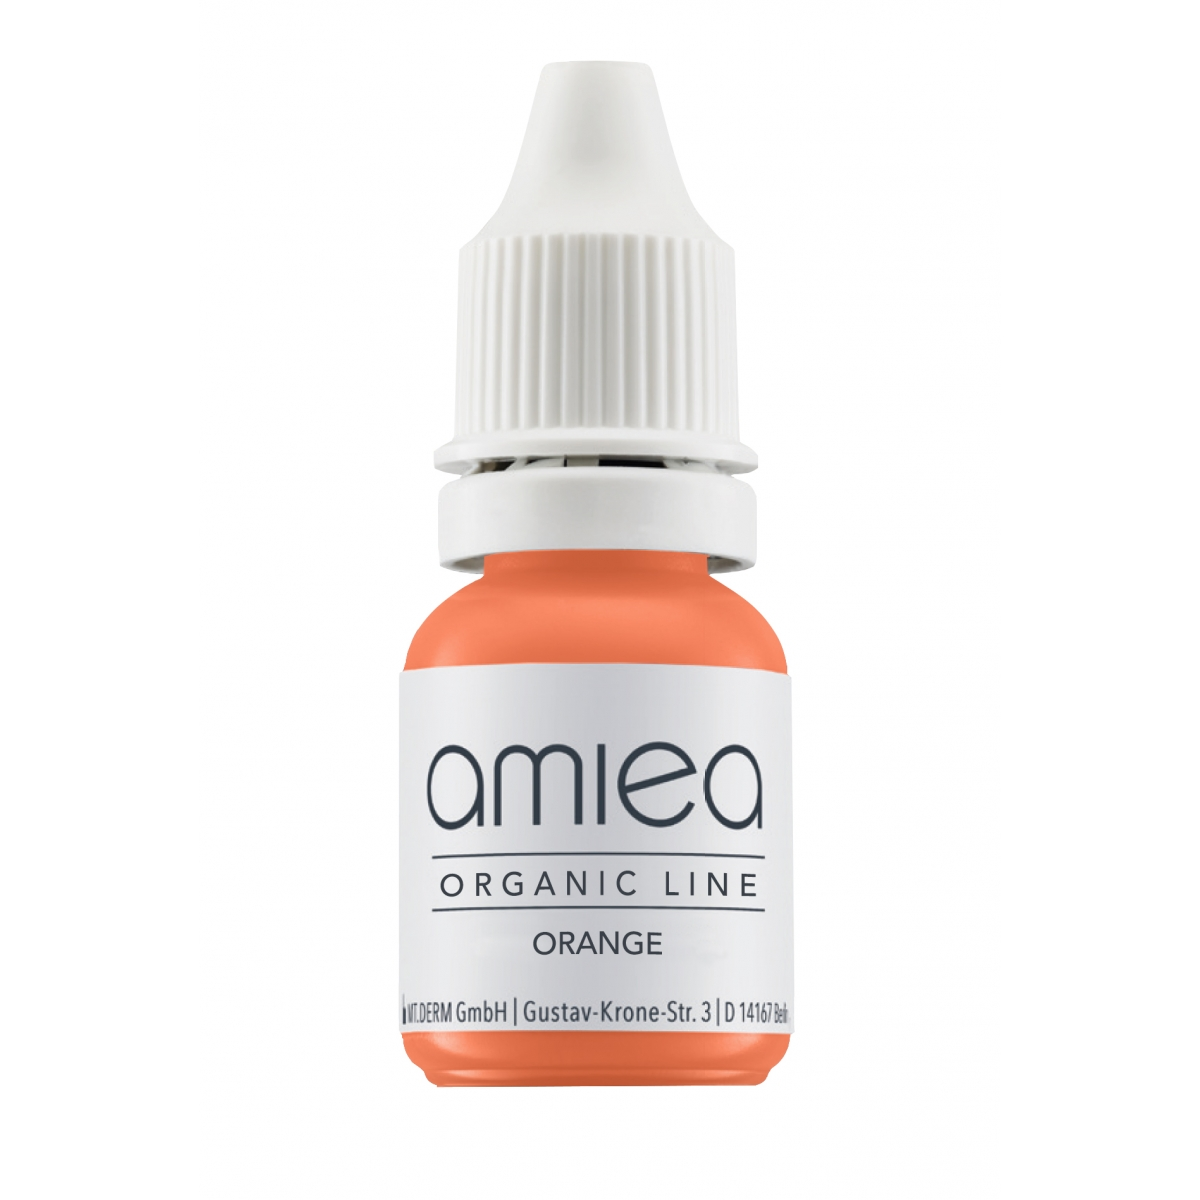 ORGANIC LINE (5ml)  - PIGMENT CORRECTEUR ORANGE ORGANICLINE AMIEA (5 ml)